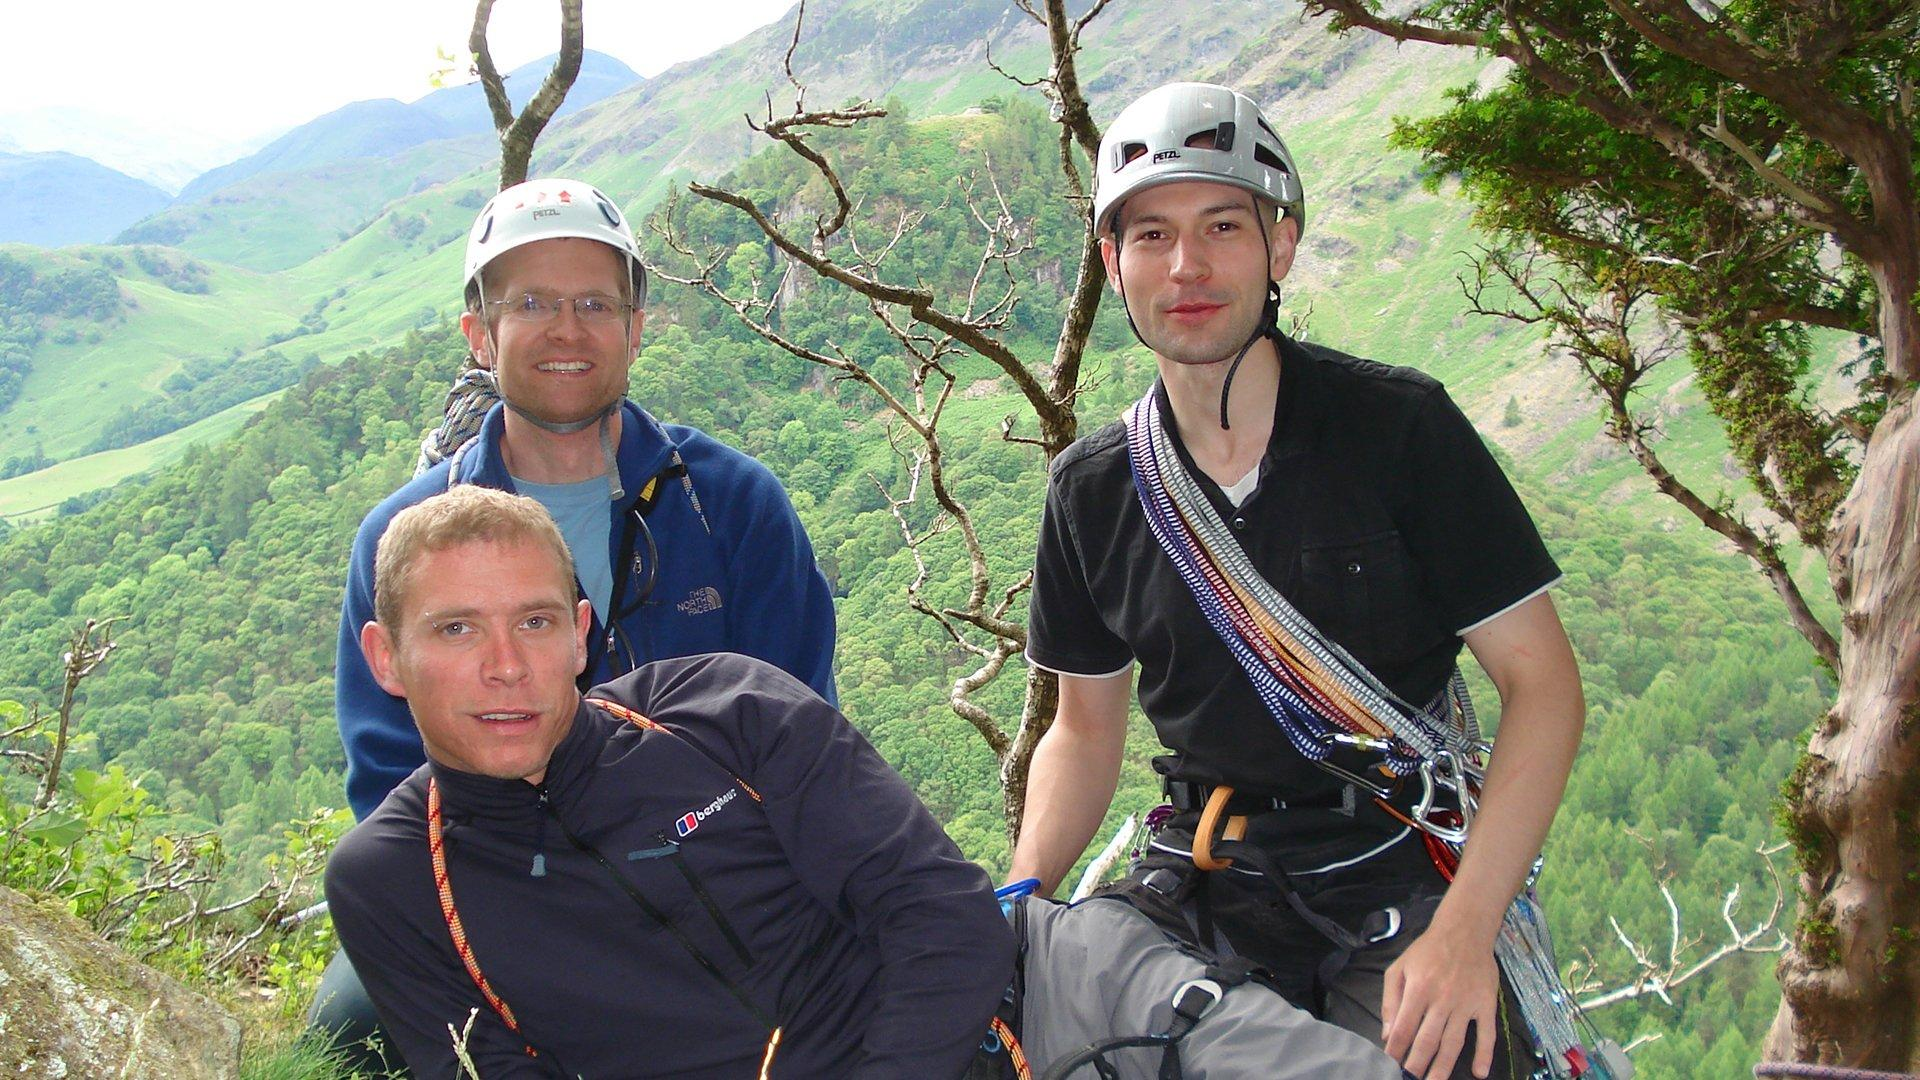 OutdoorLads posing for a photo after climbing in 2008